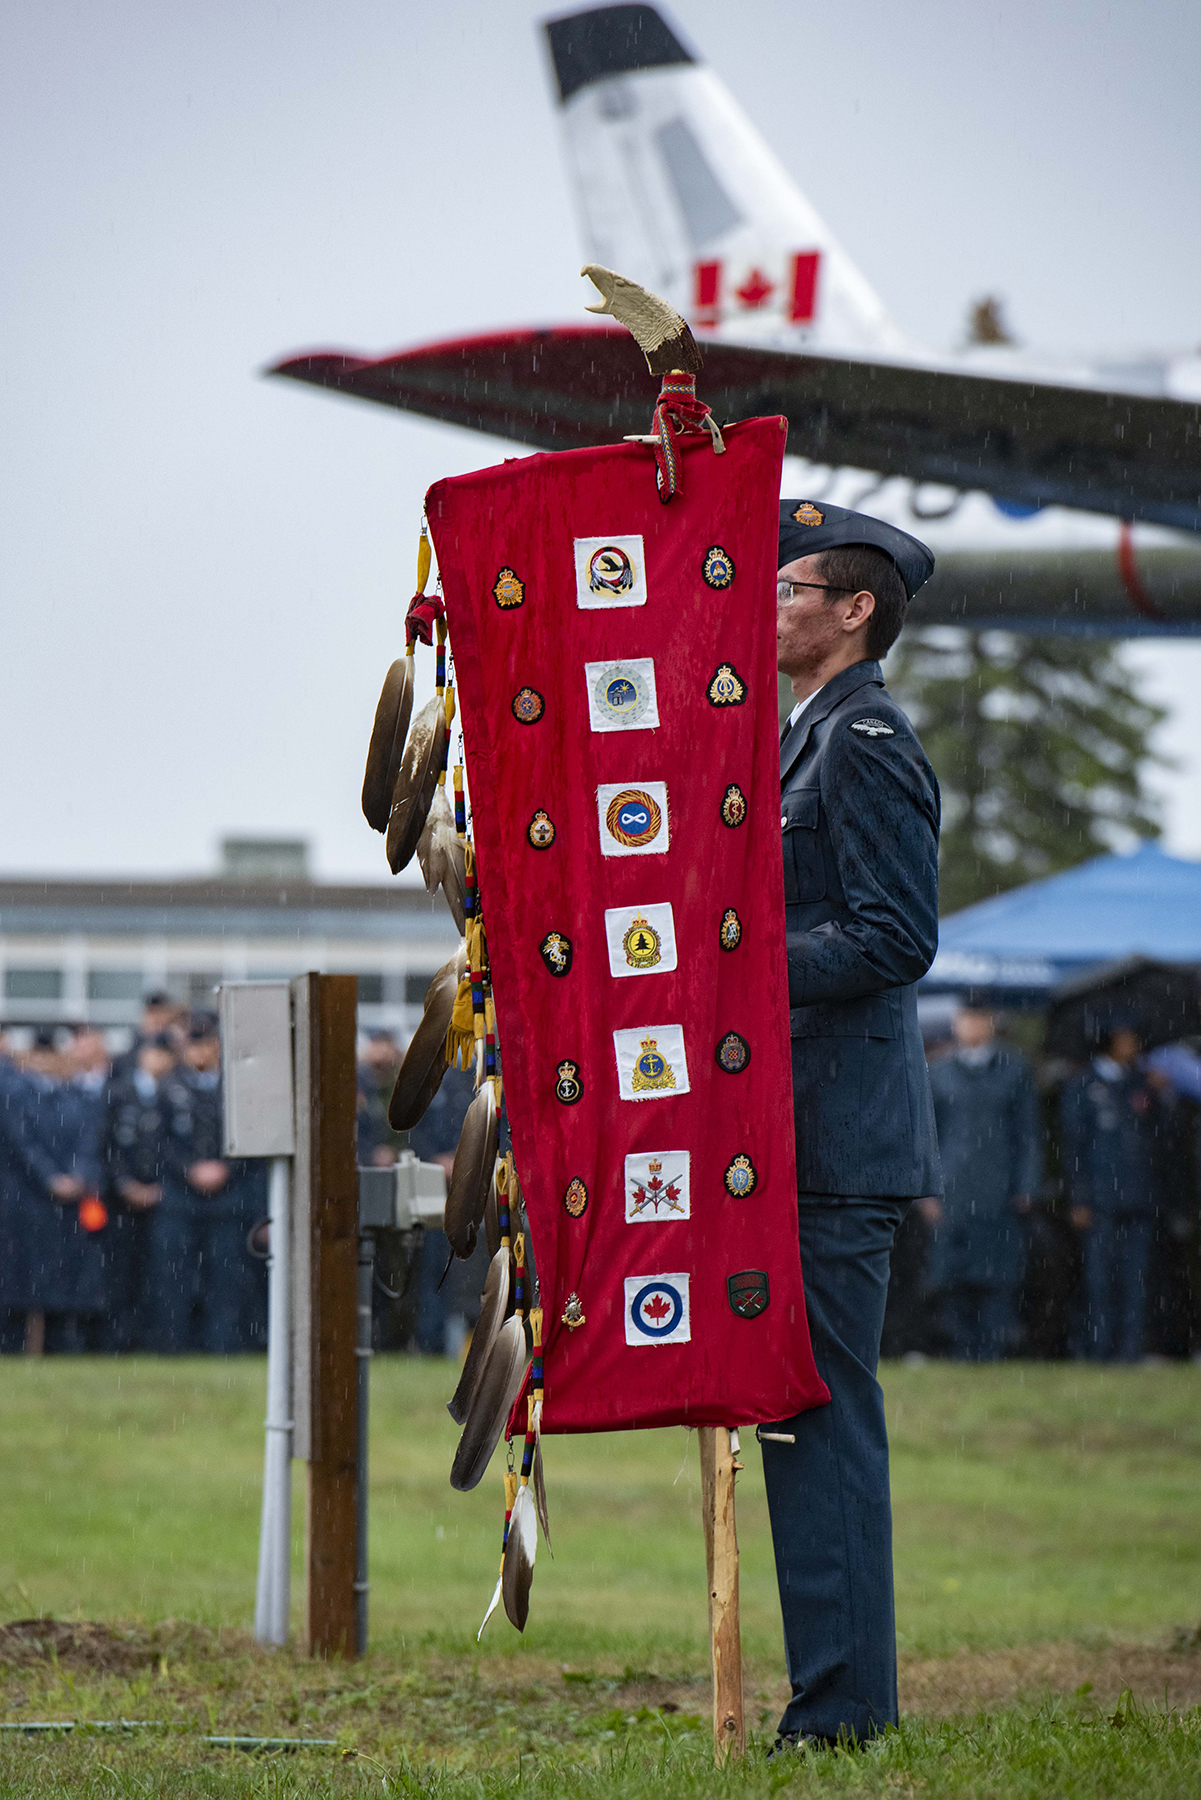 Aviator Jesse McKay stands with an Eagle Staff on September 15, 2019, during the 2019 Battle of Britain Parade at 16 Wing/Canadian Forces Base Borden, Ontario. PHOTO: Corporal Lynette Ai Dang, BM10-2019-0306-009